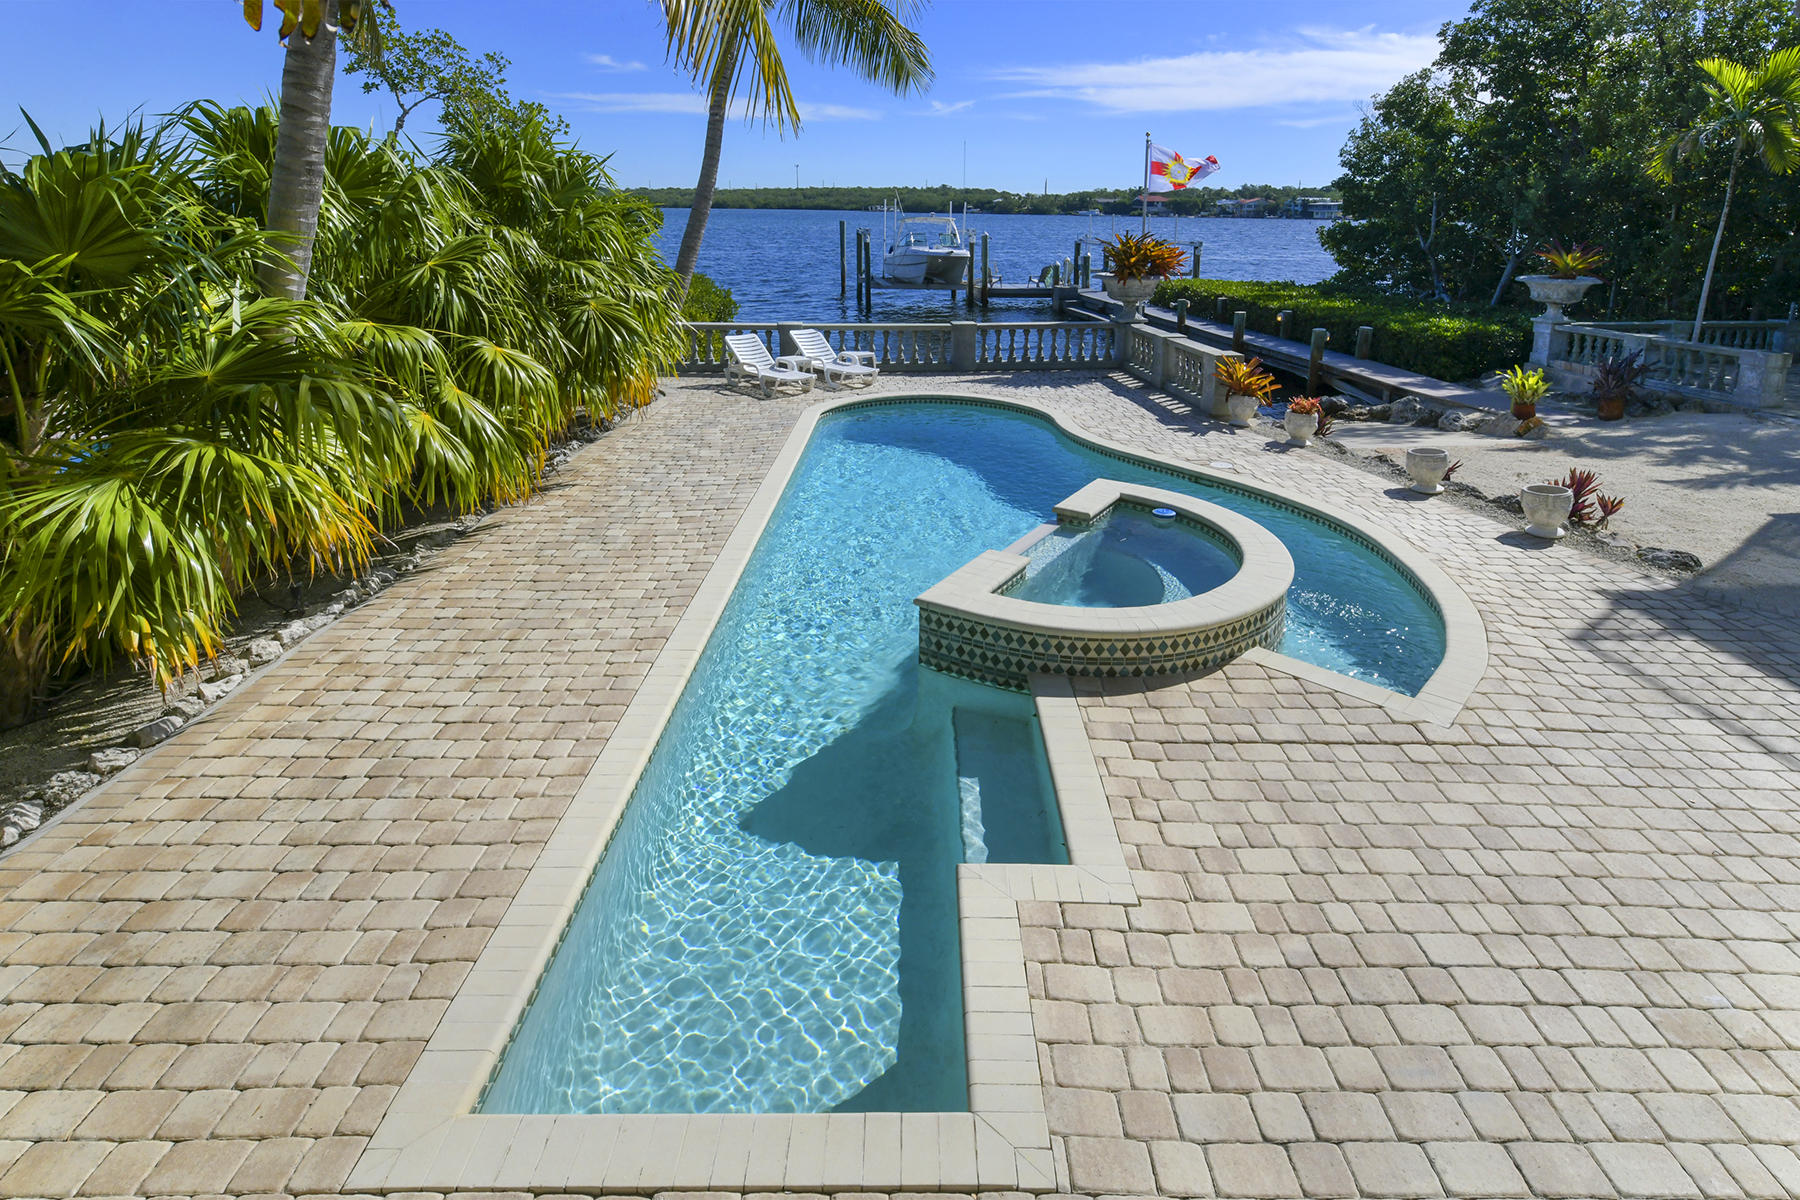 Property for Sale at 15 Mutiny Place, Key Largo, FL 15 Mutiny Place Key Largo, Florida 33037 United States